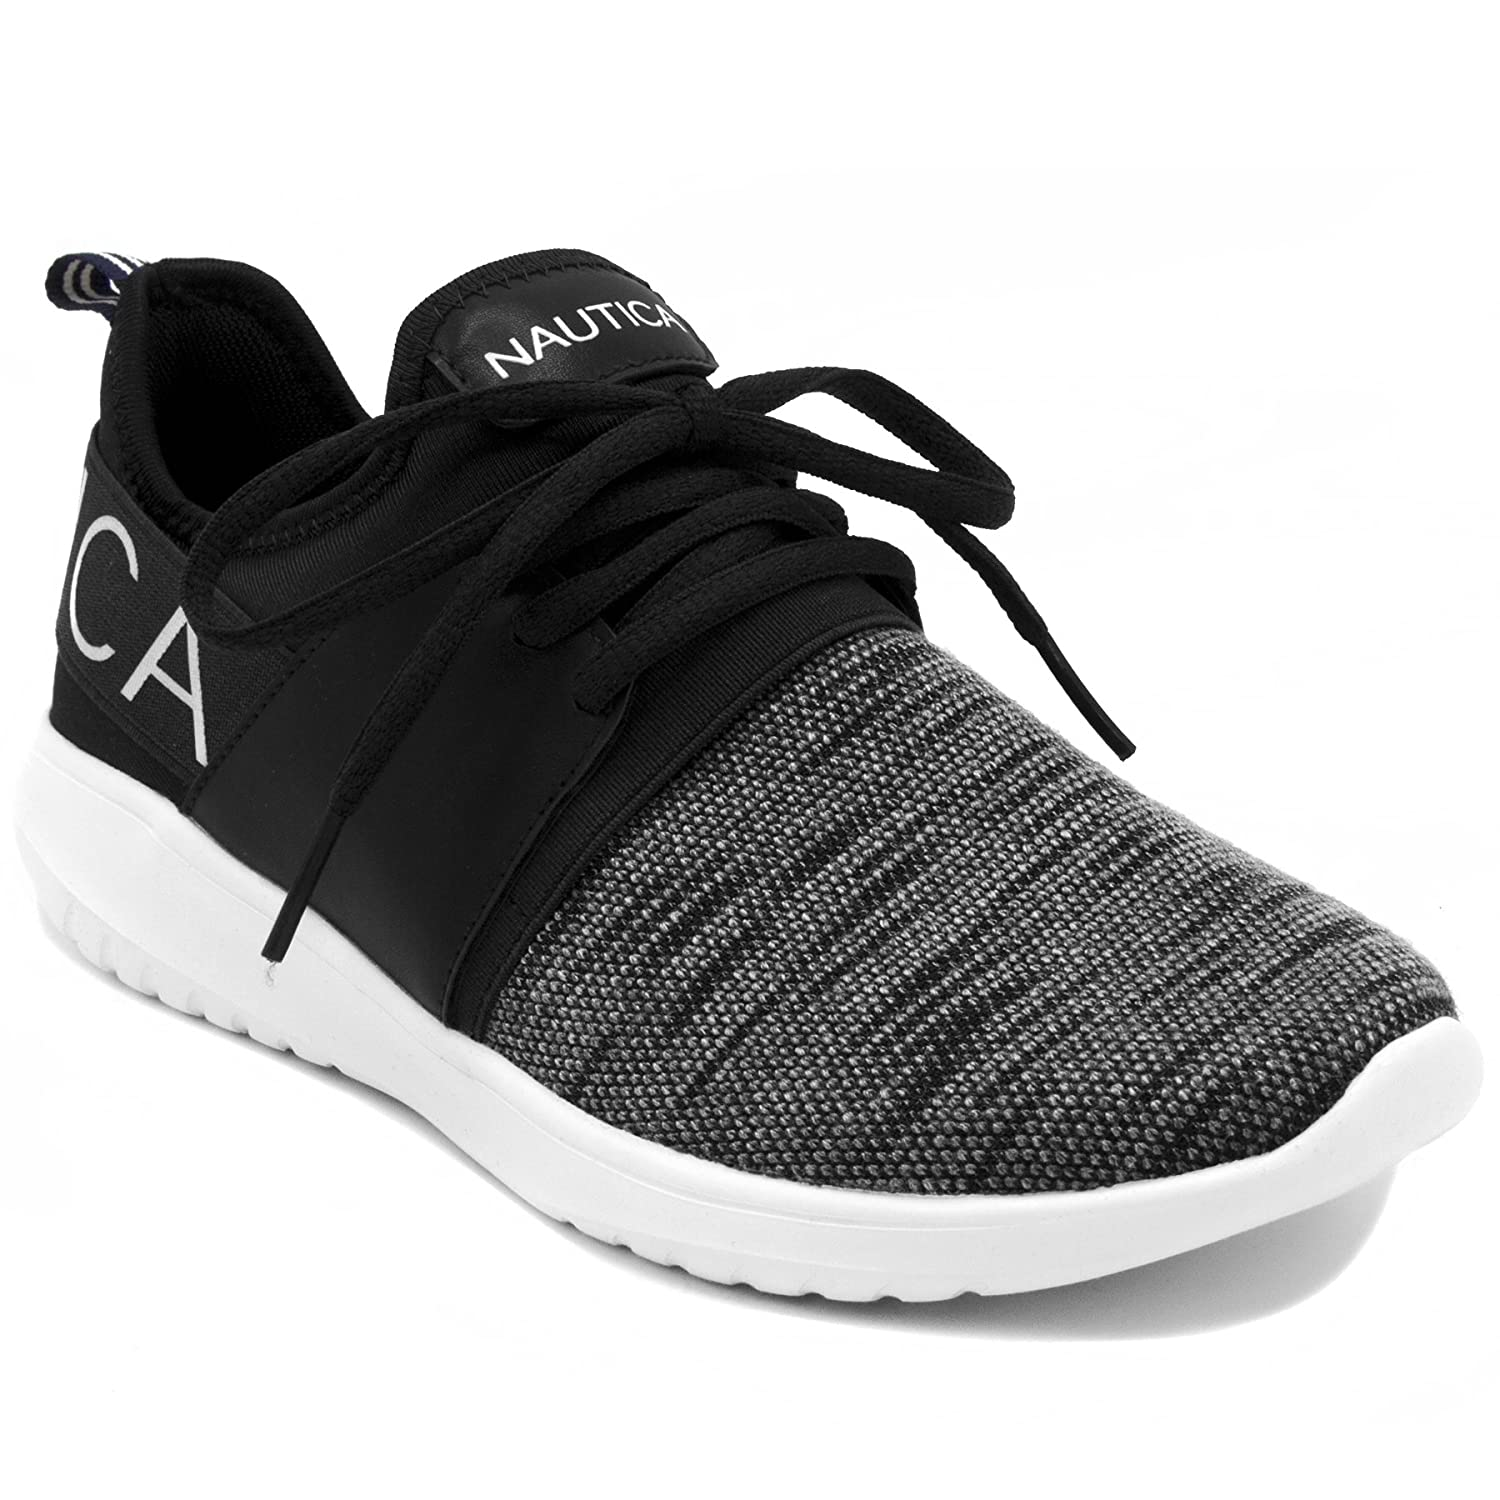 Nautica Women Fashion Jogger Sneaker (Lace-up/Slip-On) B07D4N2431 9.5 M US|Black Knit Lace-up